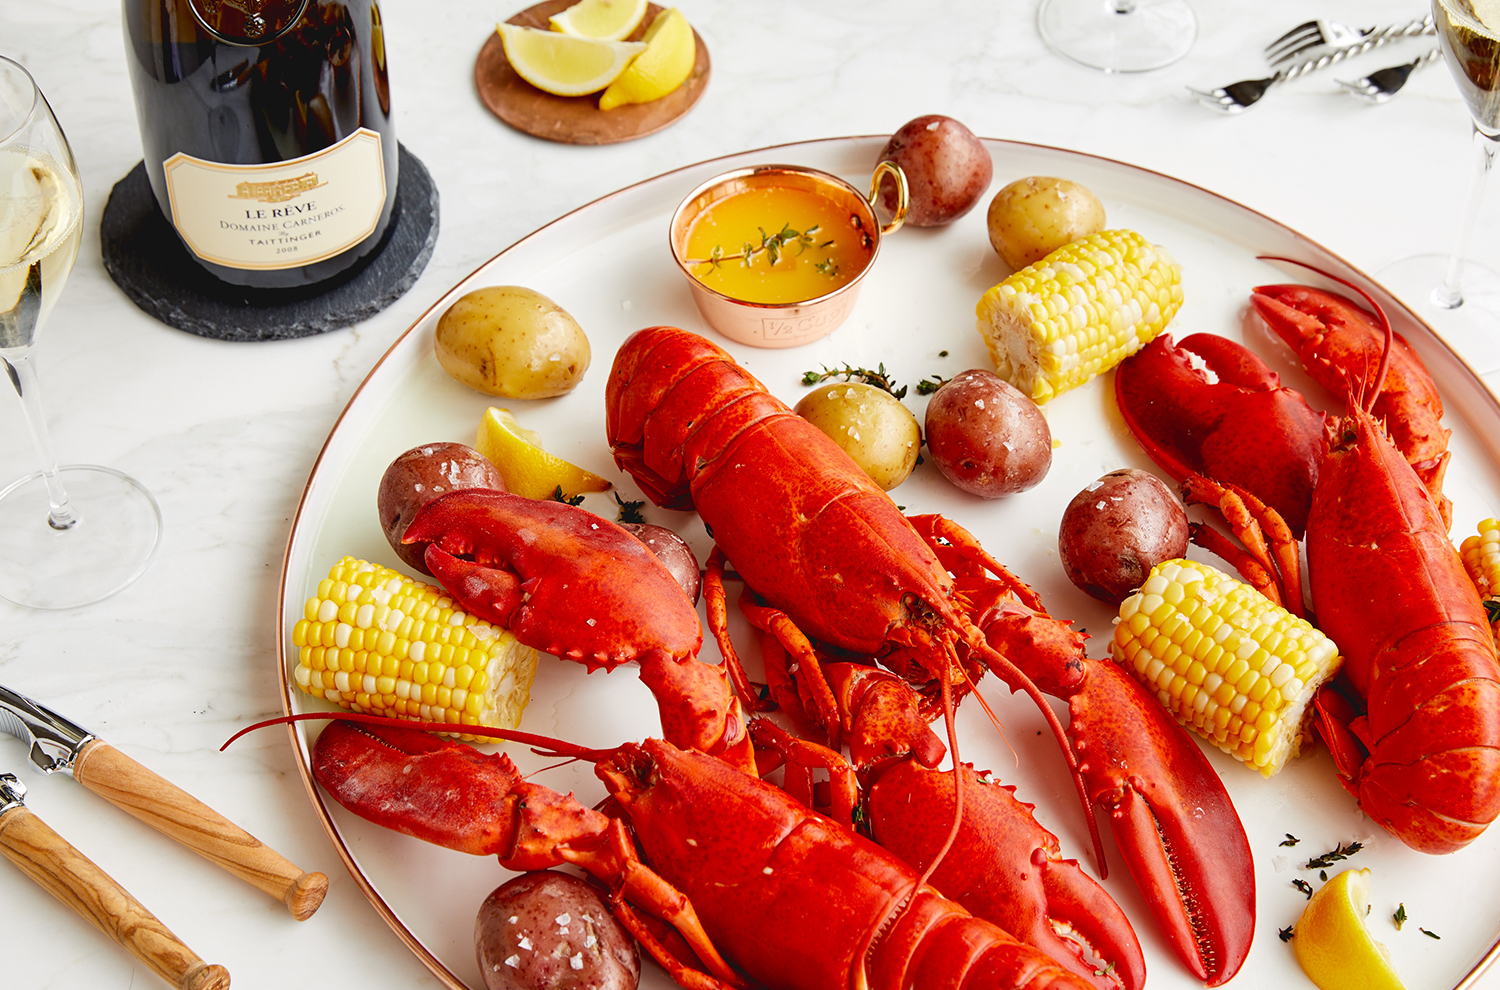 Le Reve and Lobster Event